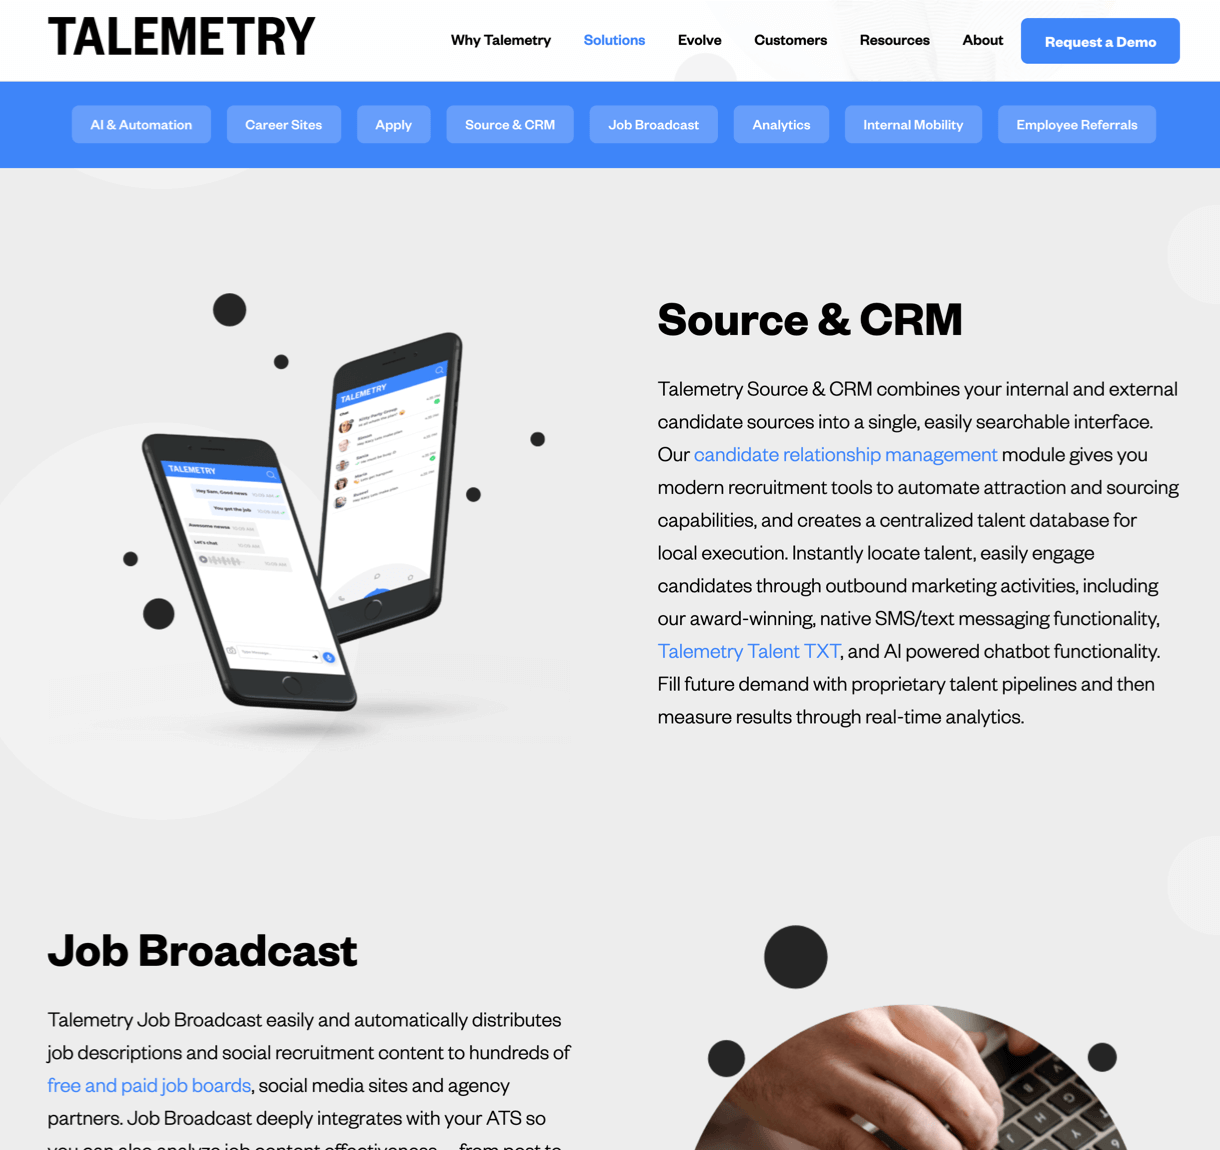 Talemetry website narrative